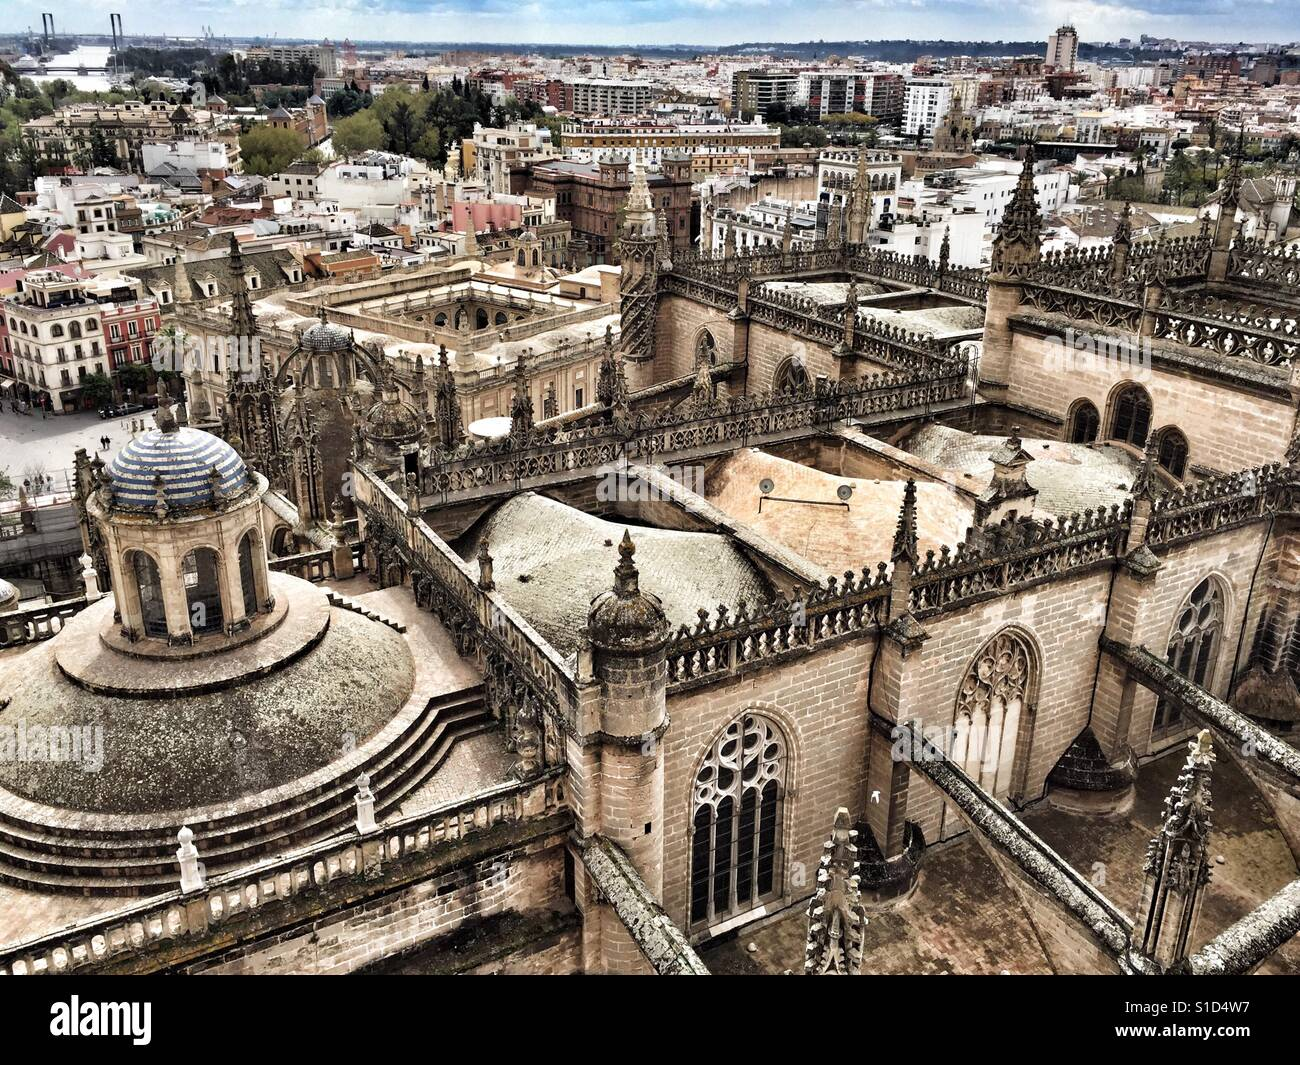 View of Seville from the Giralda, Cathedral tower, Catedral de Sevilla. - Stock Image